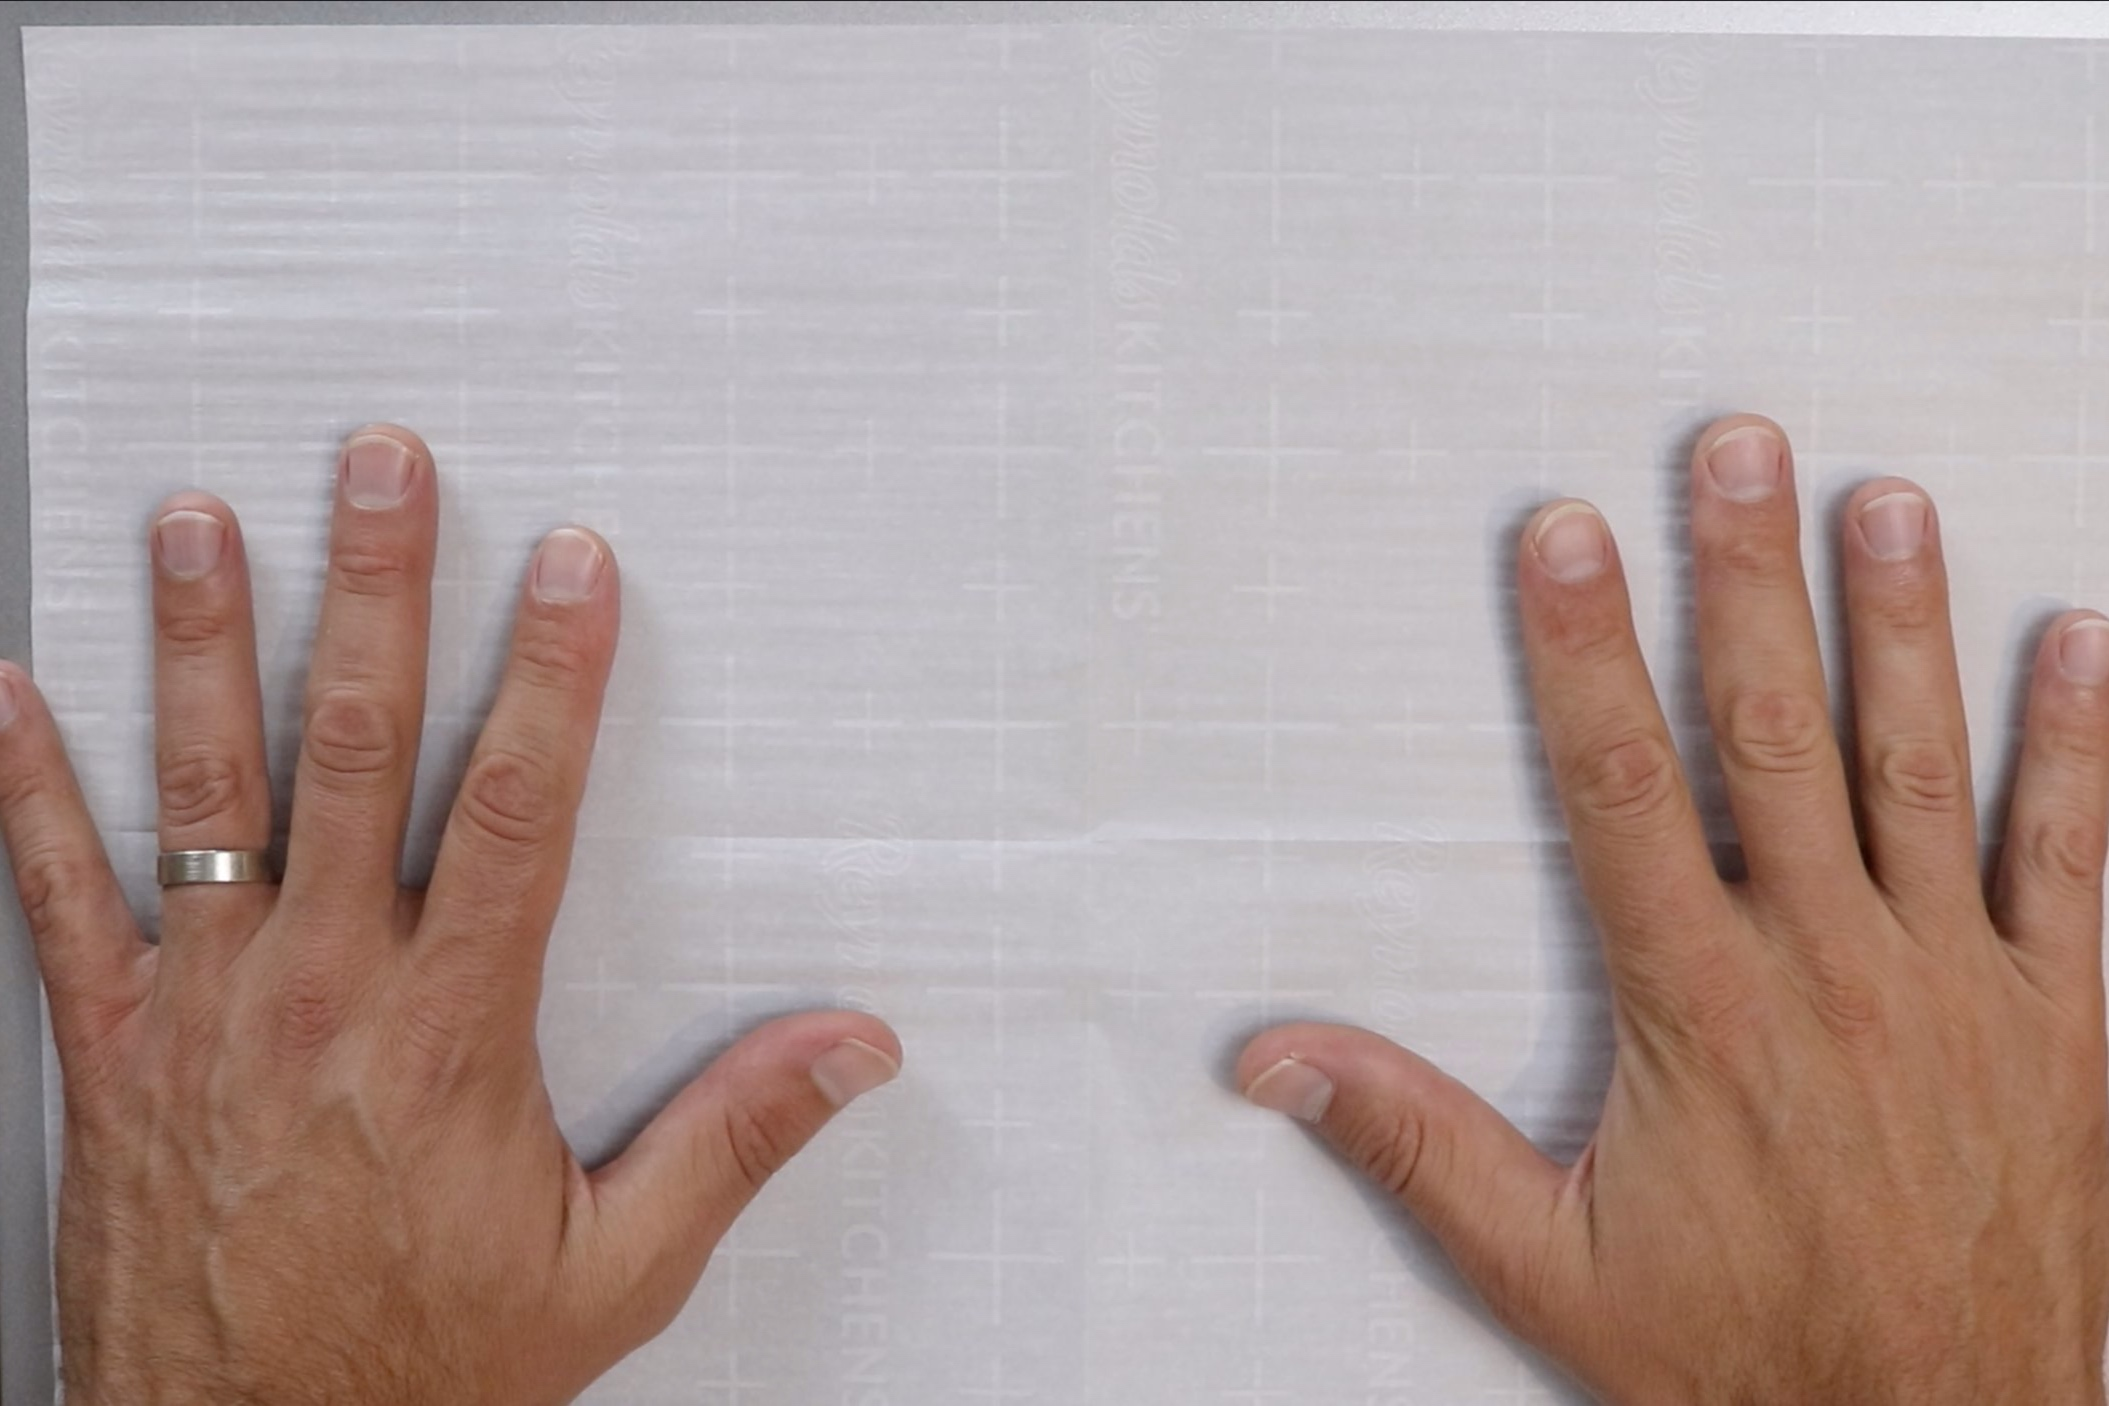 7. Preheat oven to 350 degrees and line a baking sheet with parchment paper. Make the glaze. -